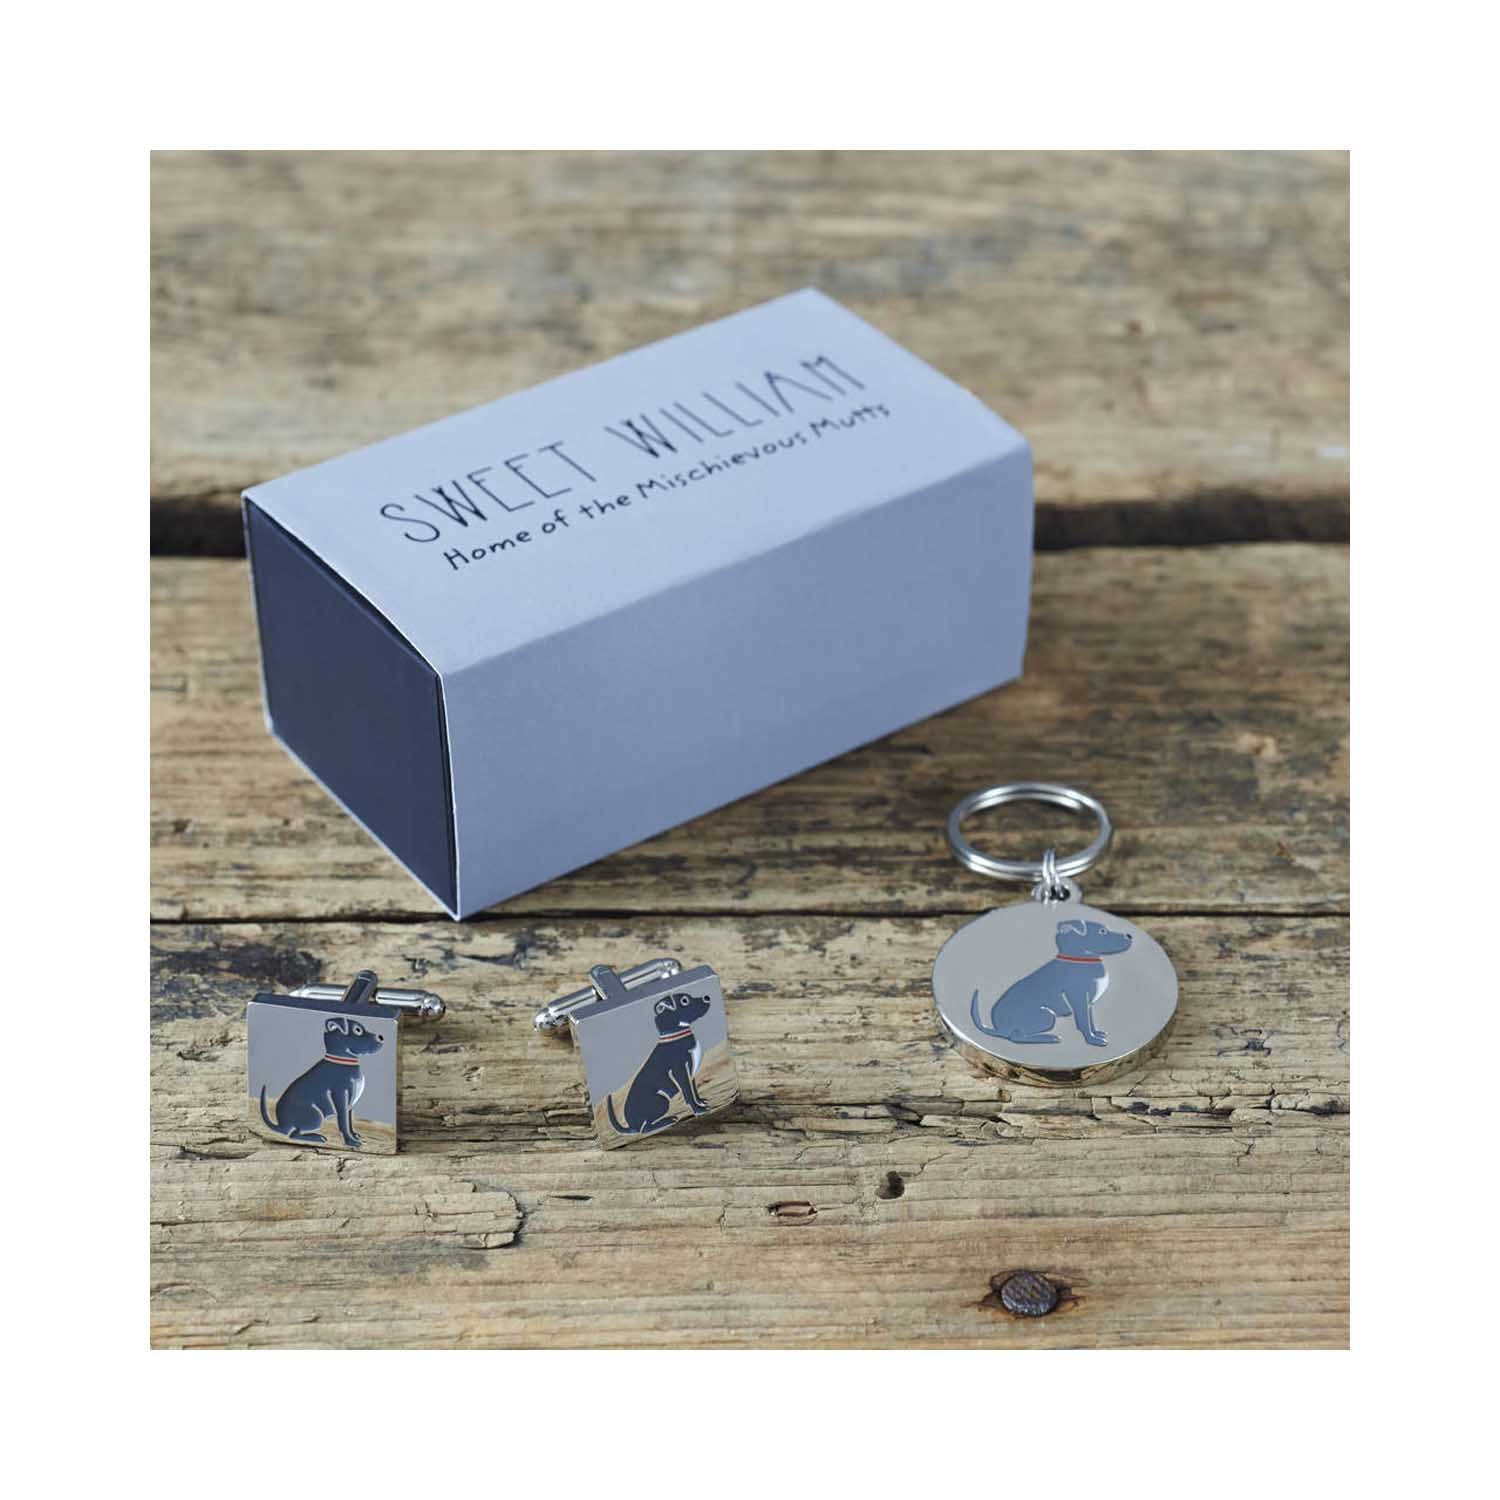 Dog Lover Gifts available at Dog Krazy Gifts - Bree the Staffordshire Bull Terrier cufflink and dog ID set - part of the Sweet William range available from www.DogKrazyGifts.co.uk